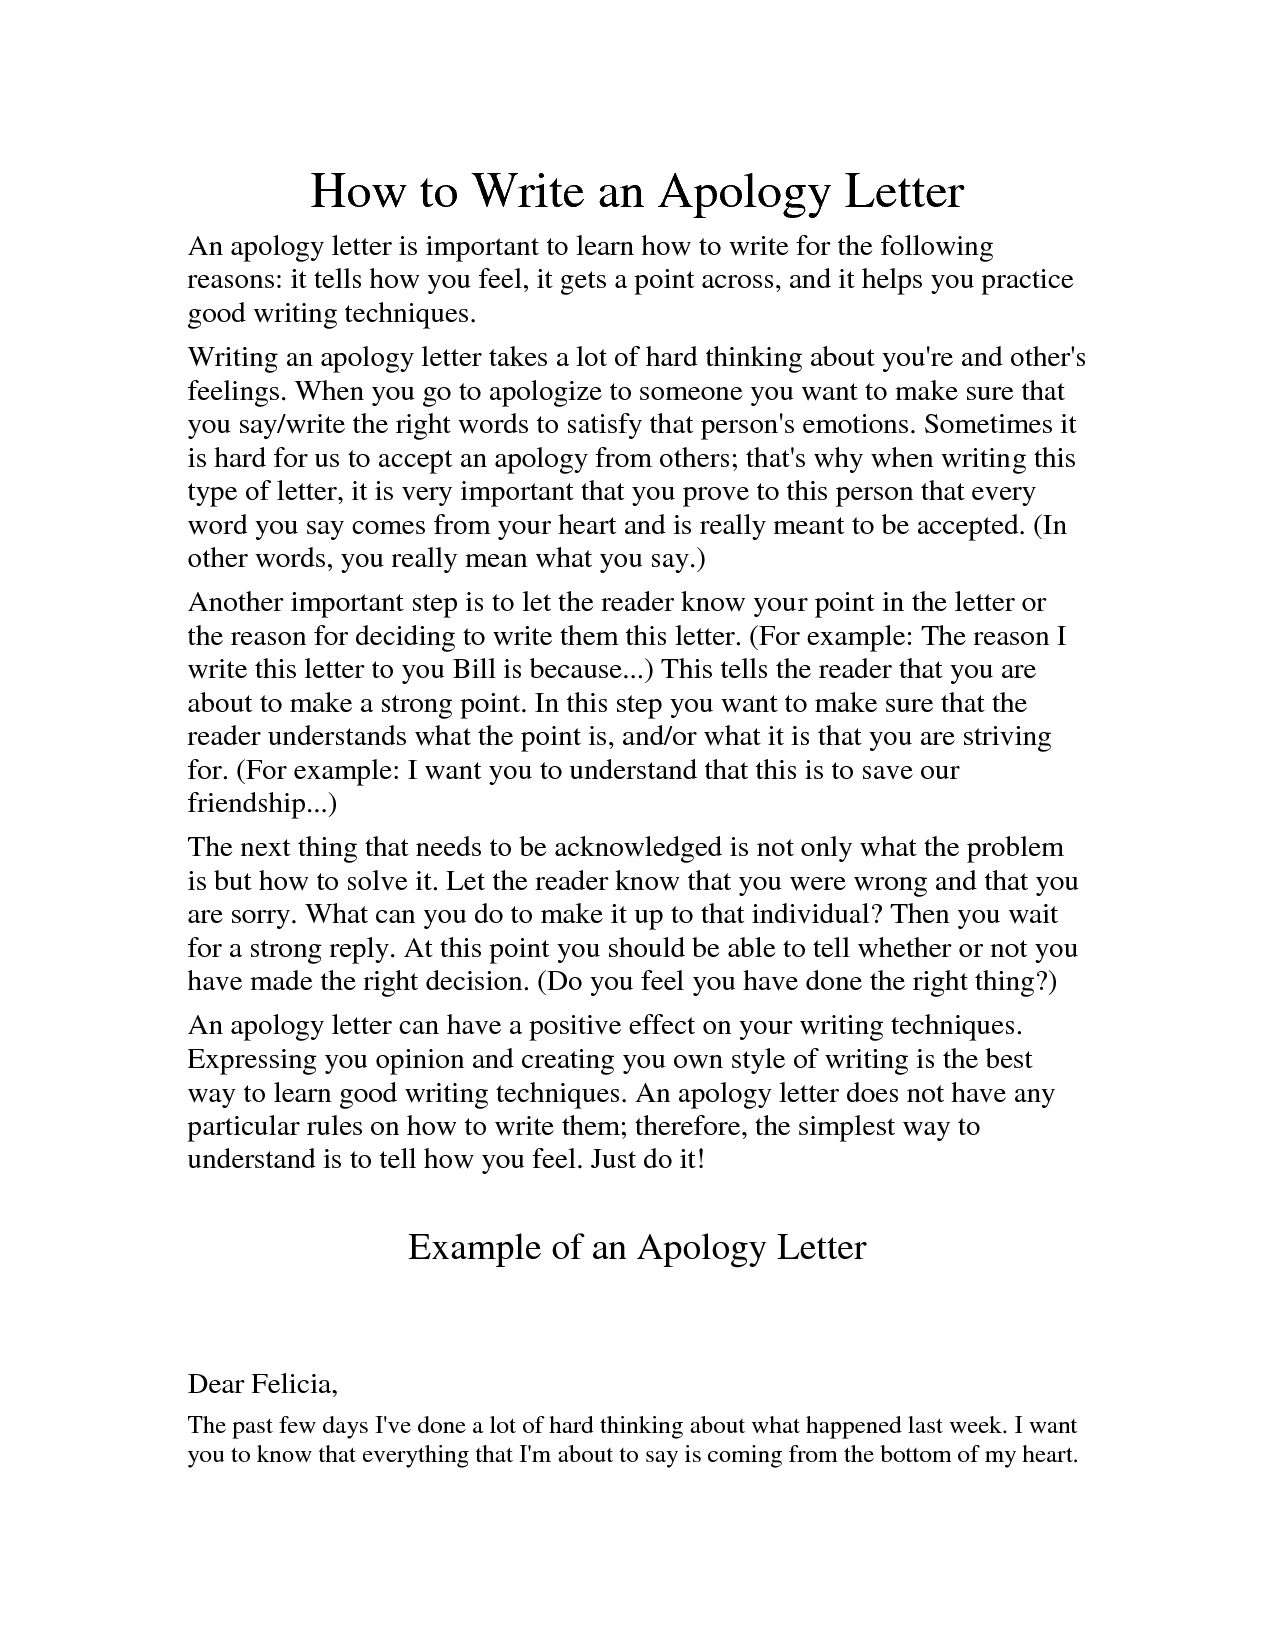 How to write an apology letter to a teacher sampleletter of apology how to write an apology letter to a teacher sampleletter of apology business letter sample spiritdancerdesigns Choice Image